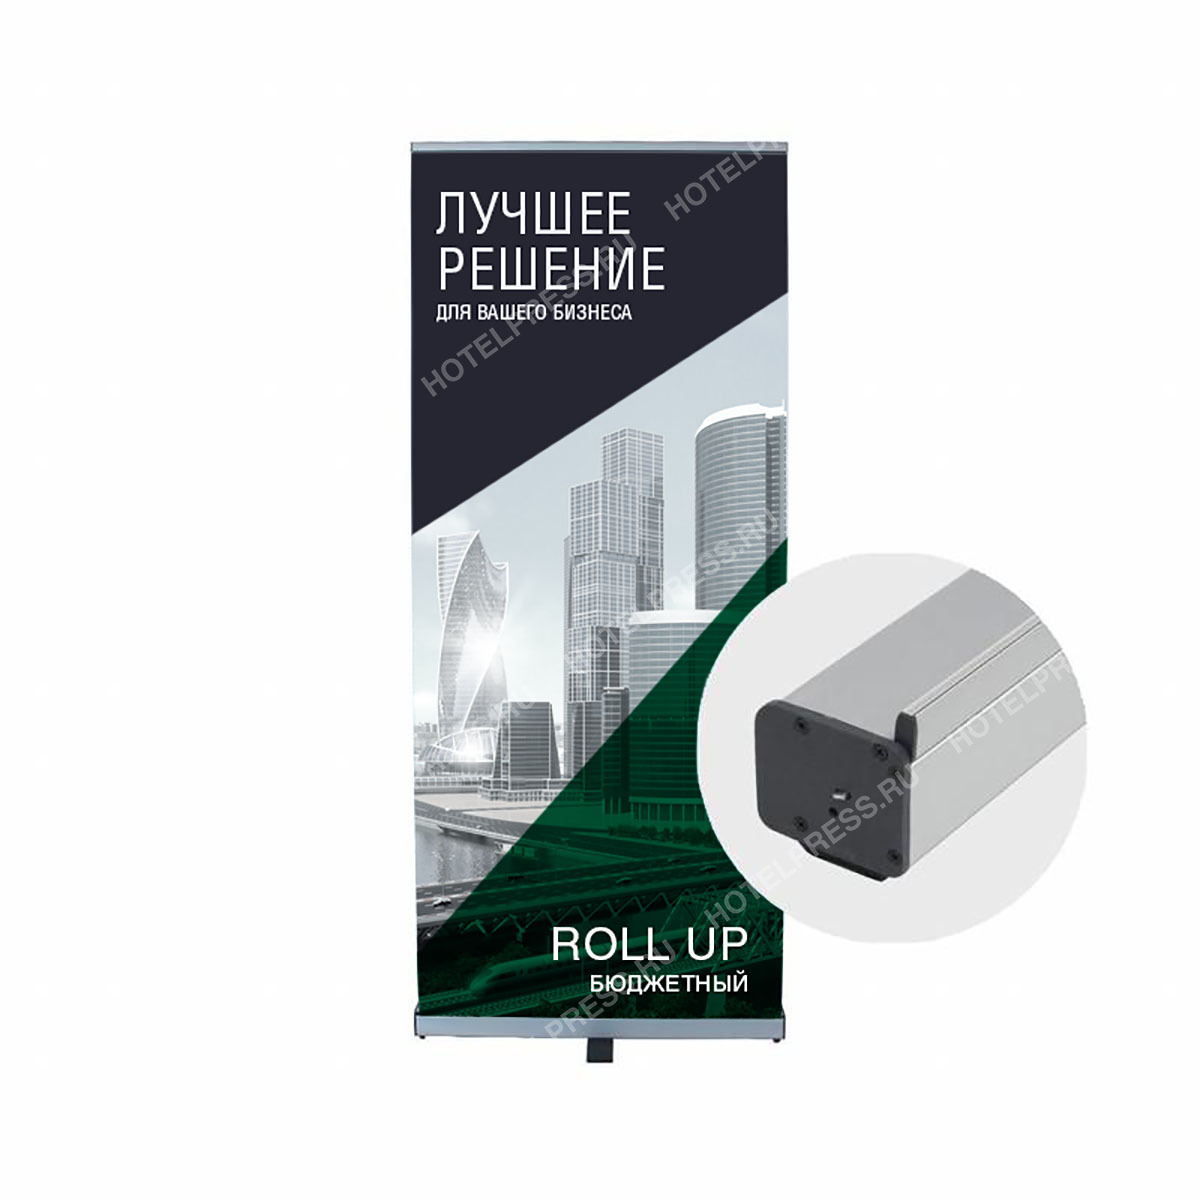 Roll up budget